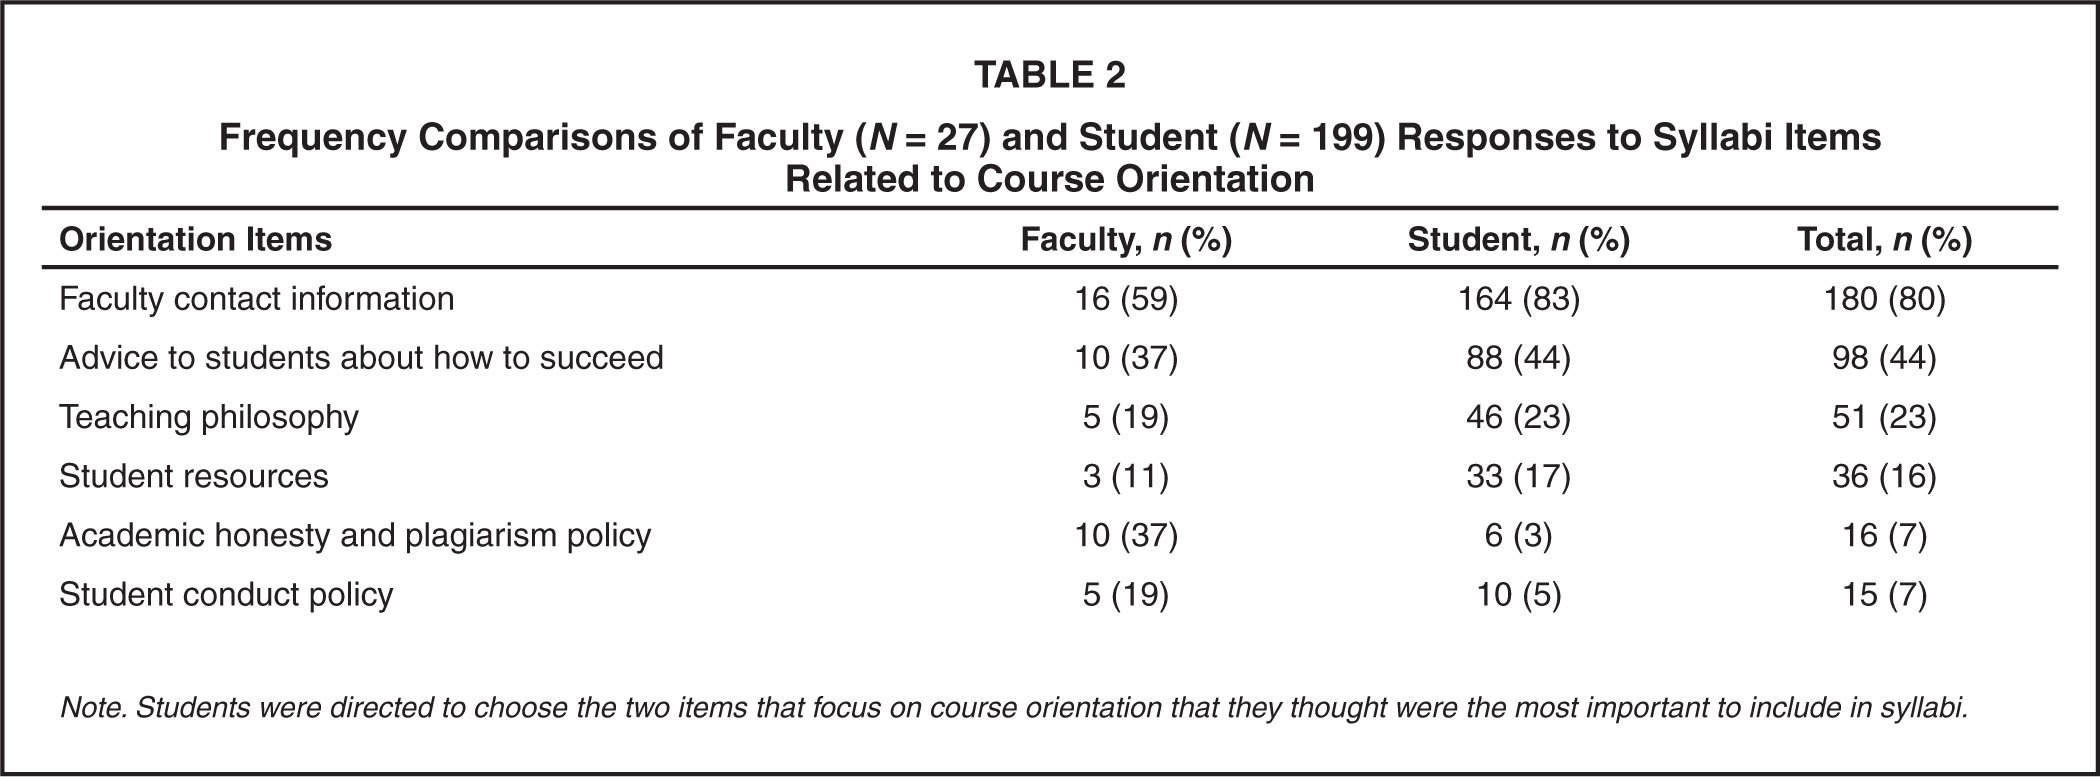 Frequency Comparisons of Faculty (N = 27) and Student (N = 199) Responses to Syllabi Items Related to Course Orientation